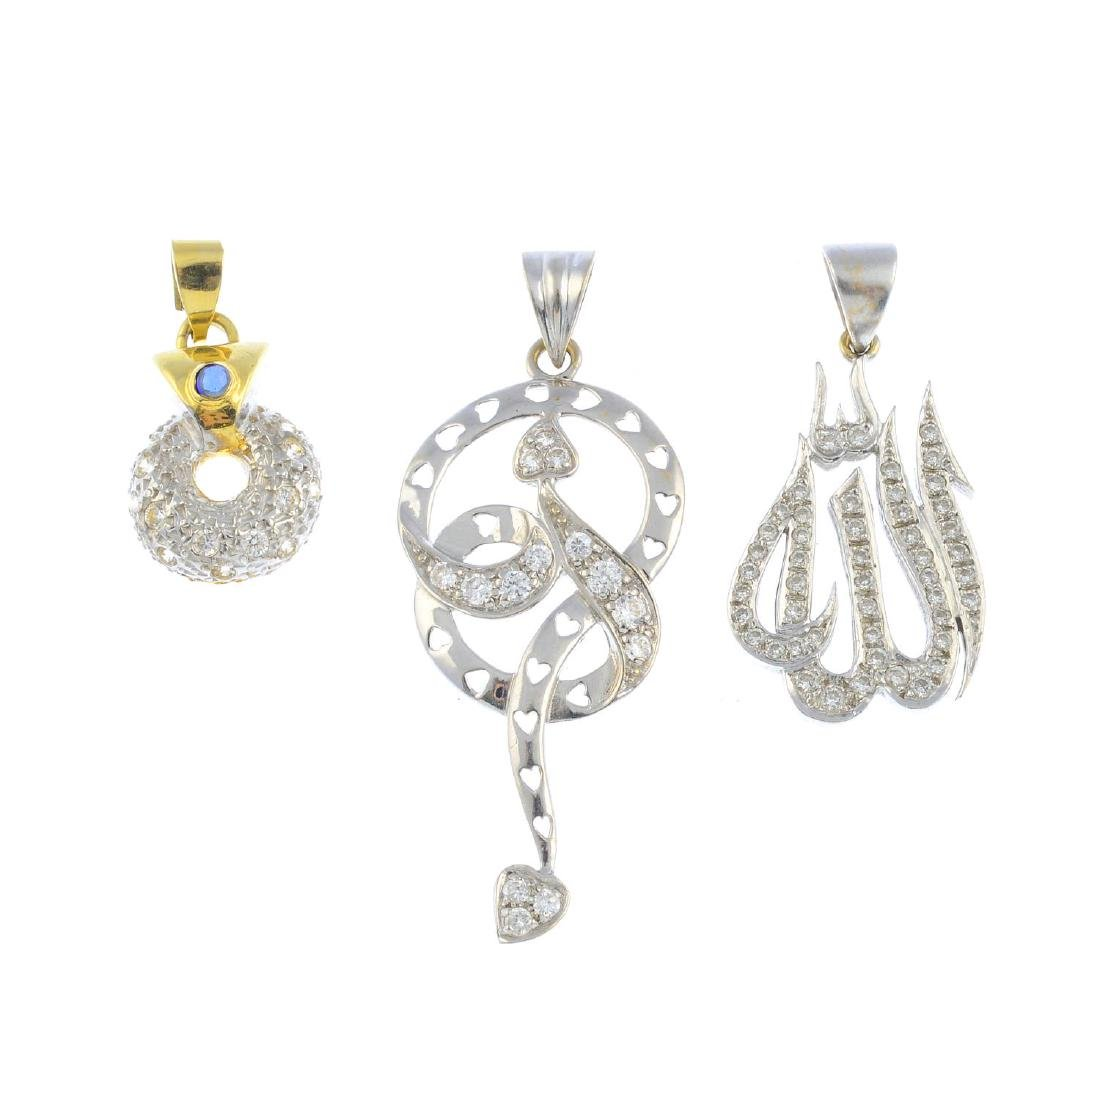 Three diamond and gem-set pendants. To include a